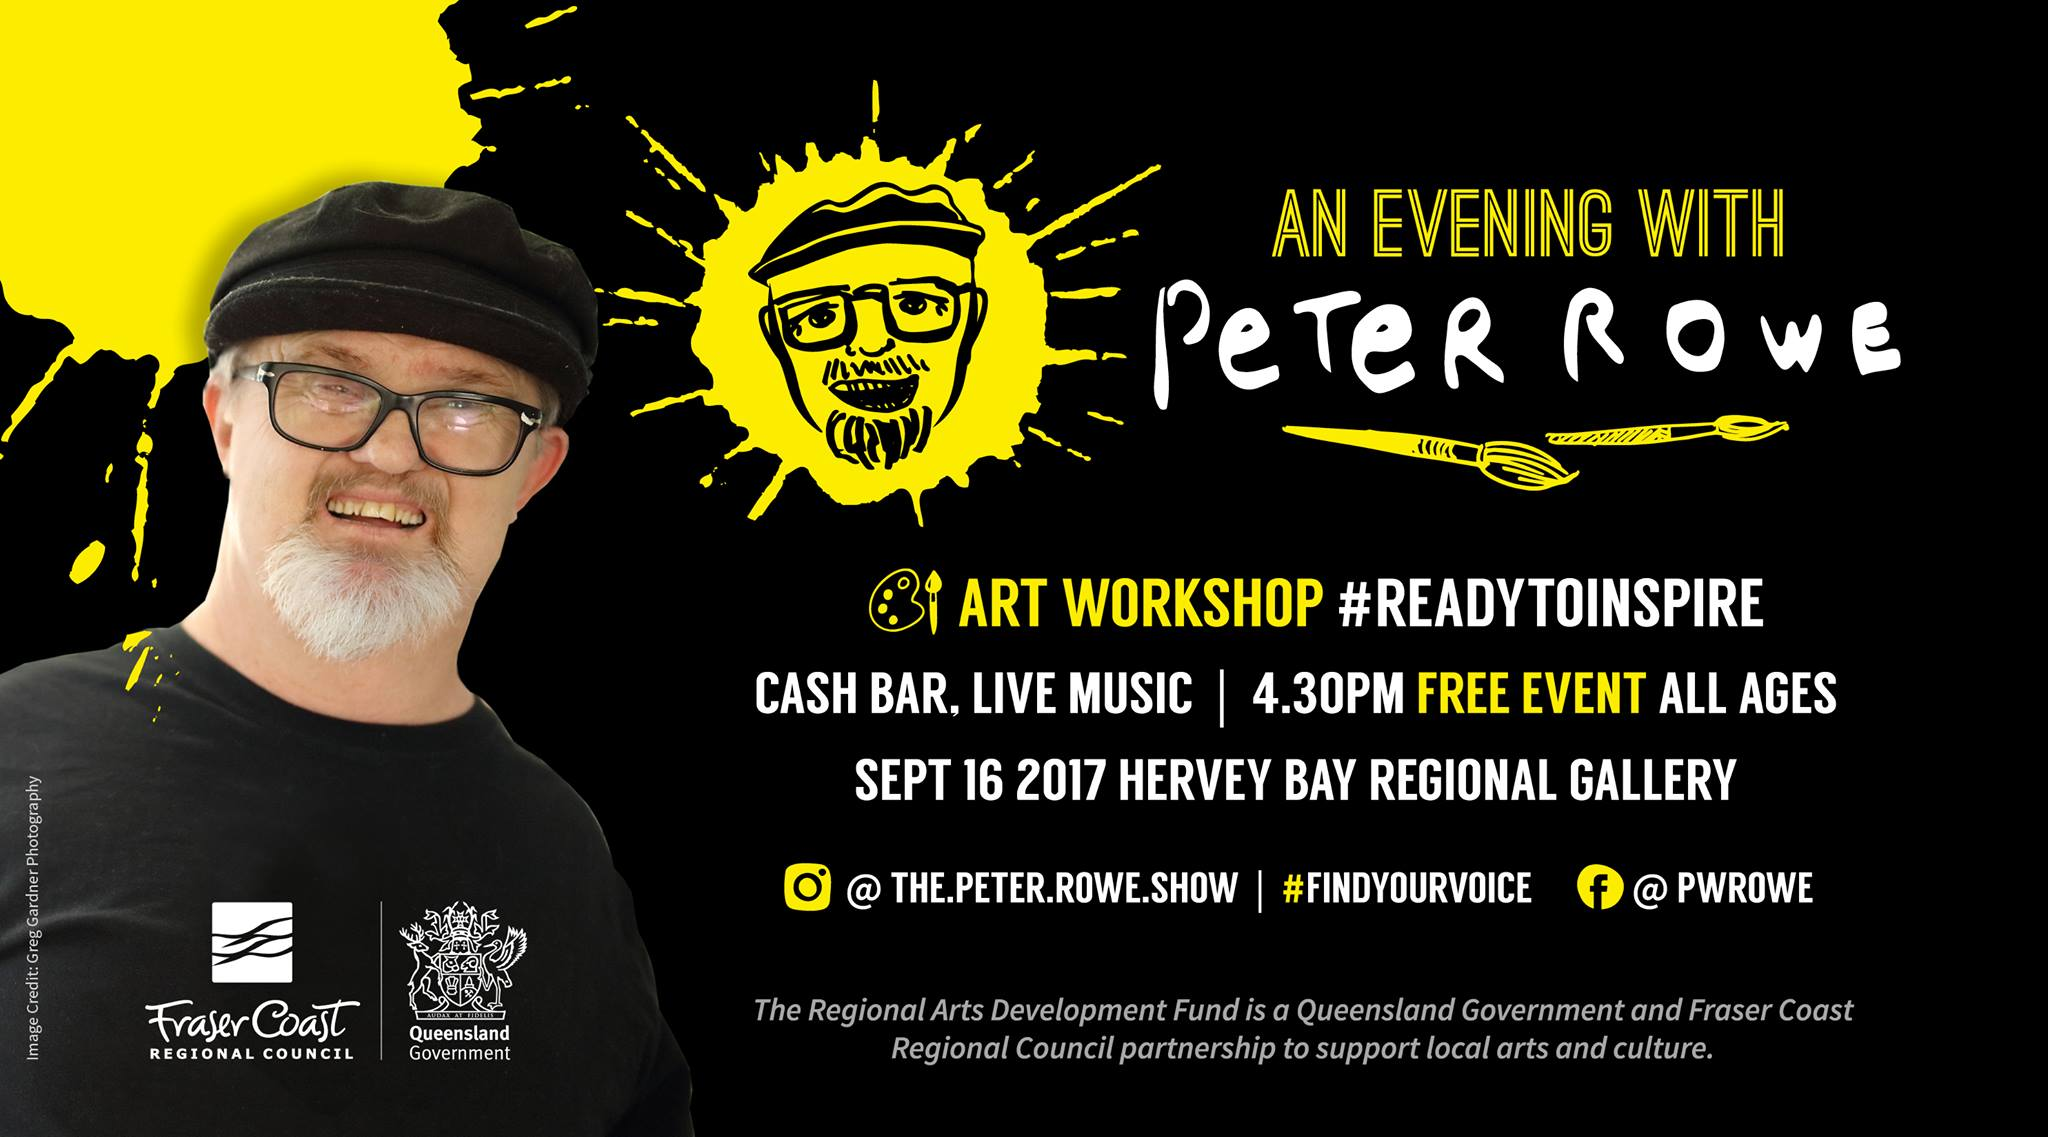 An evening with Peter Rowe